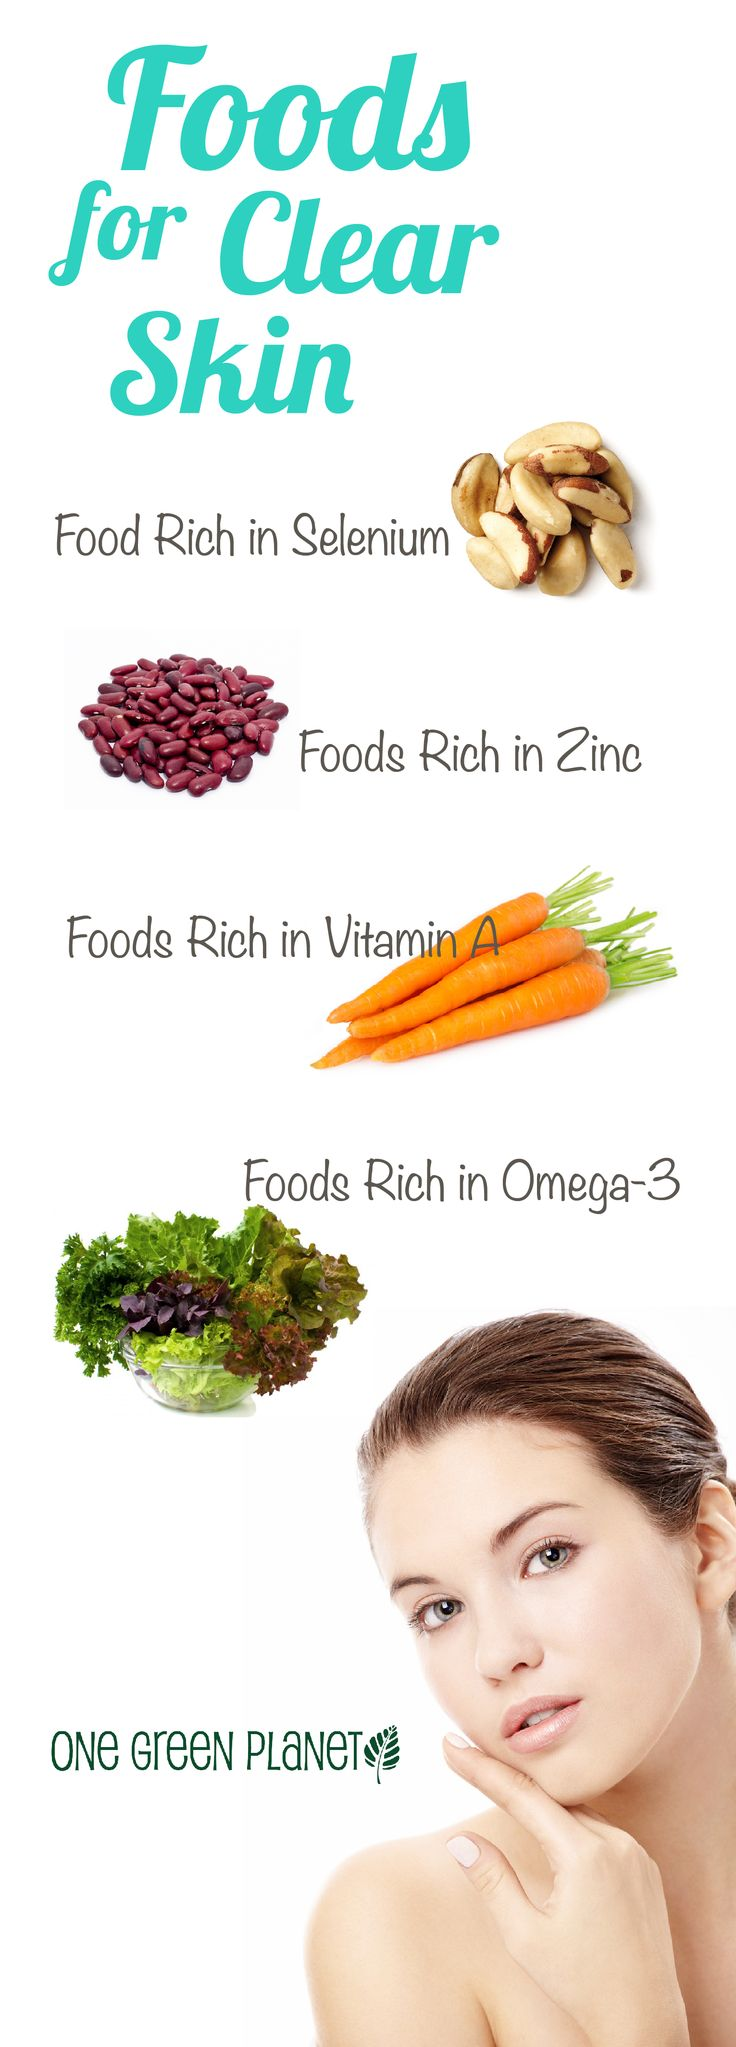 The Clear Skin Diet: How To Eat For Better Skin